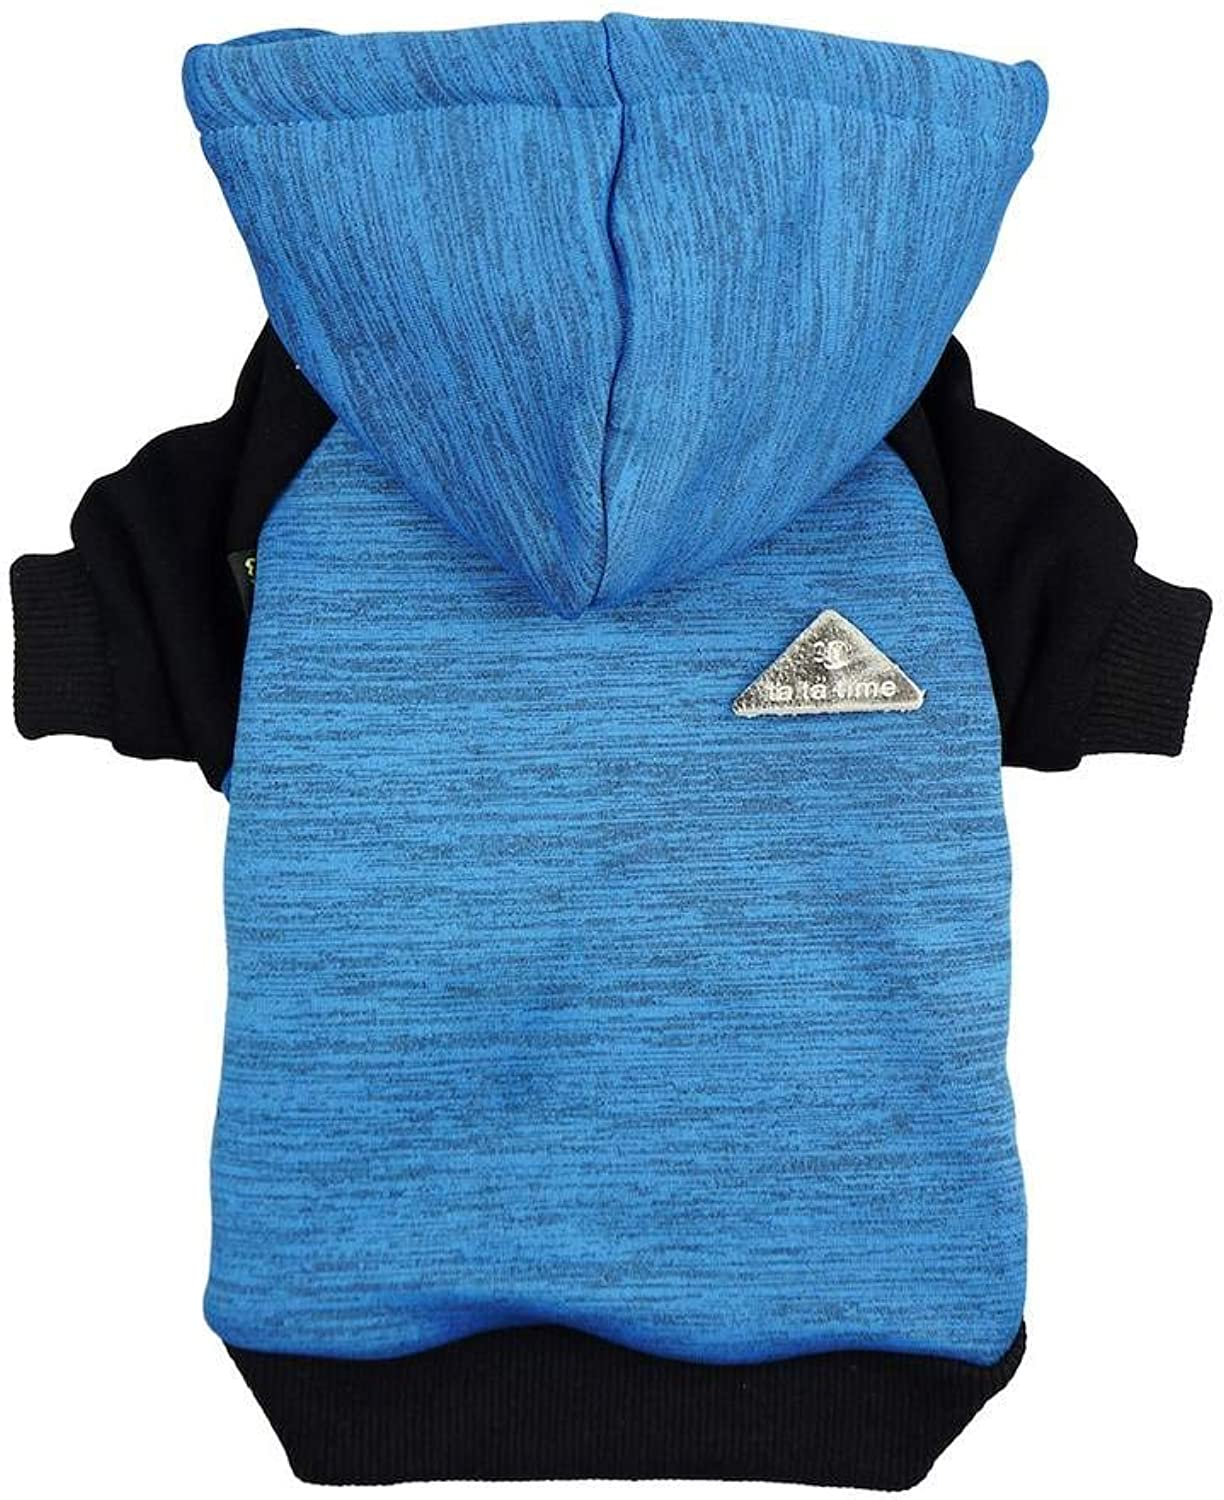 Fitwarm Pet Clothes Sweatshirts for Dog Coats Hooded Jackets, bluee, XL